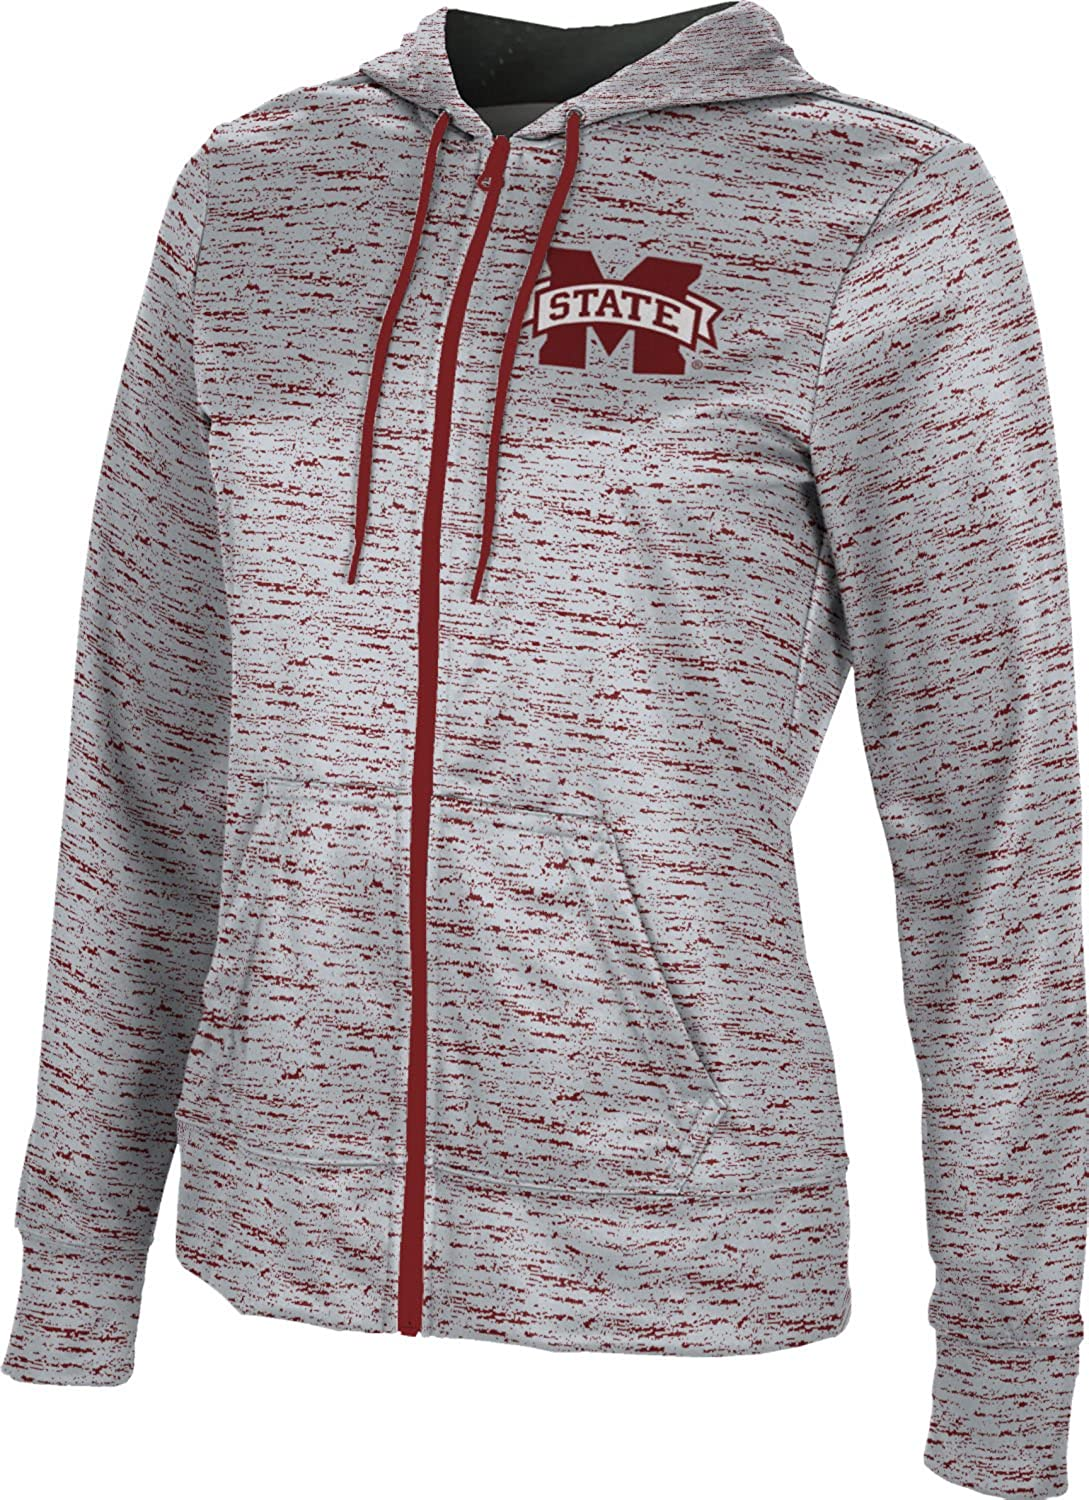 Mississippi State University Women's sold out Hoodie School Zipper Spiri Popular product